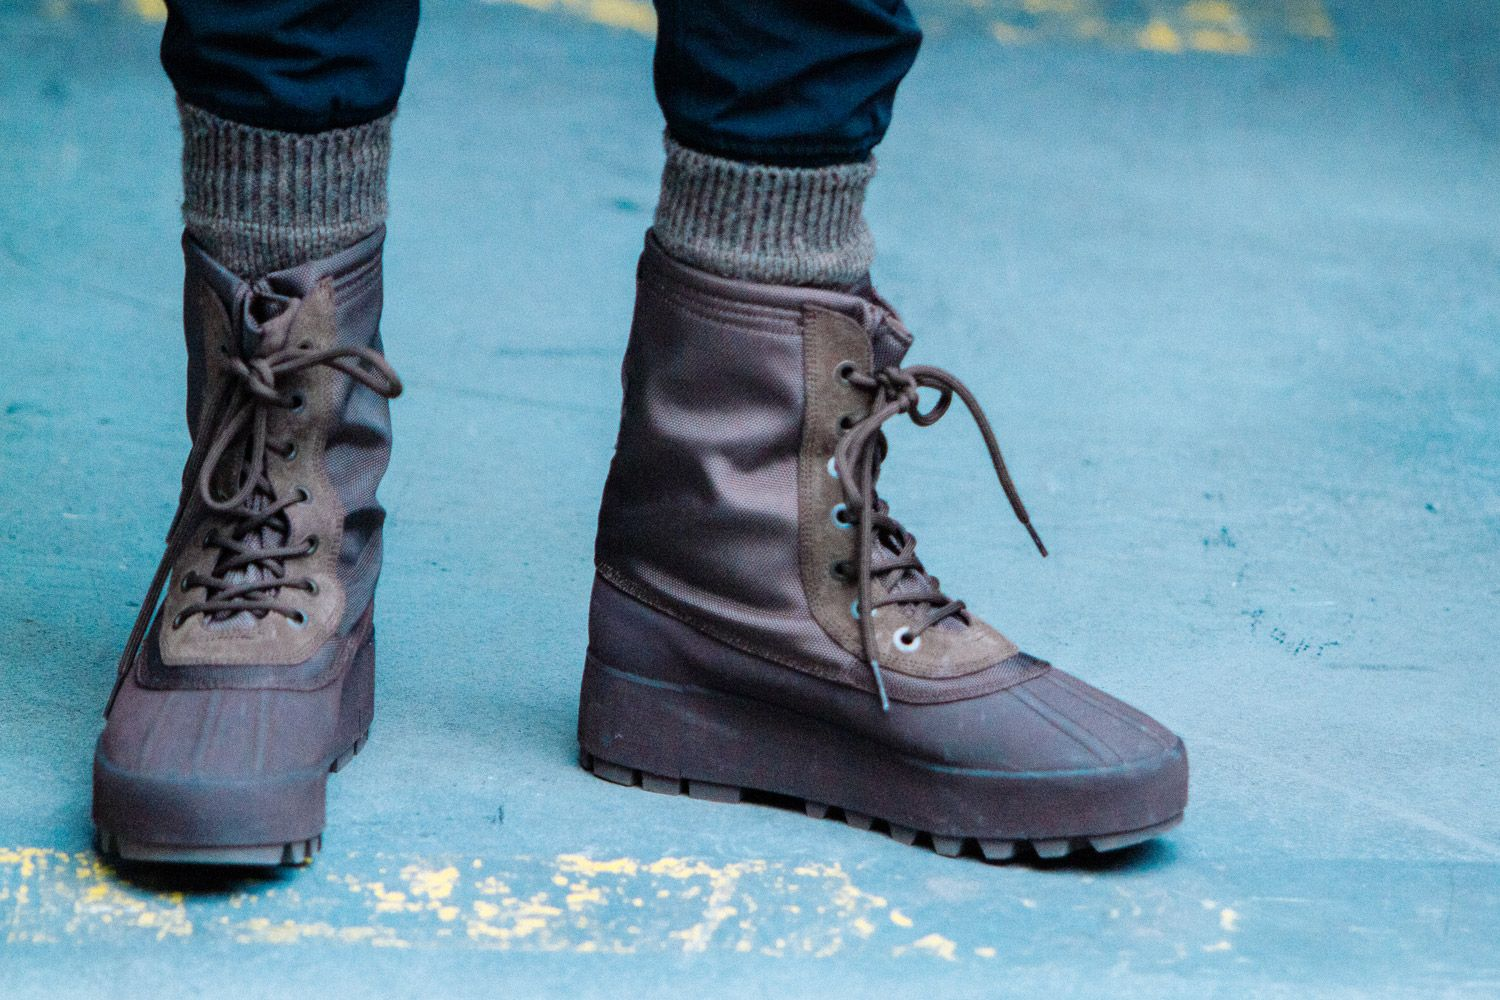 Kanye West Debuts More Adidas Yeezy Footwear At New York Fashion Week Highsnobiety Yeezy Boots Boots Kanye West Adidas